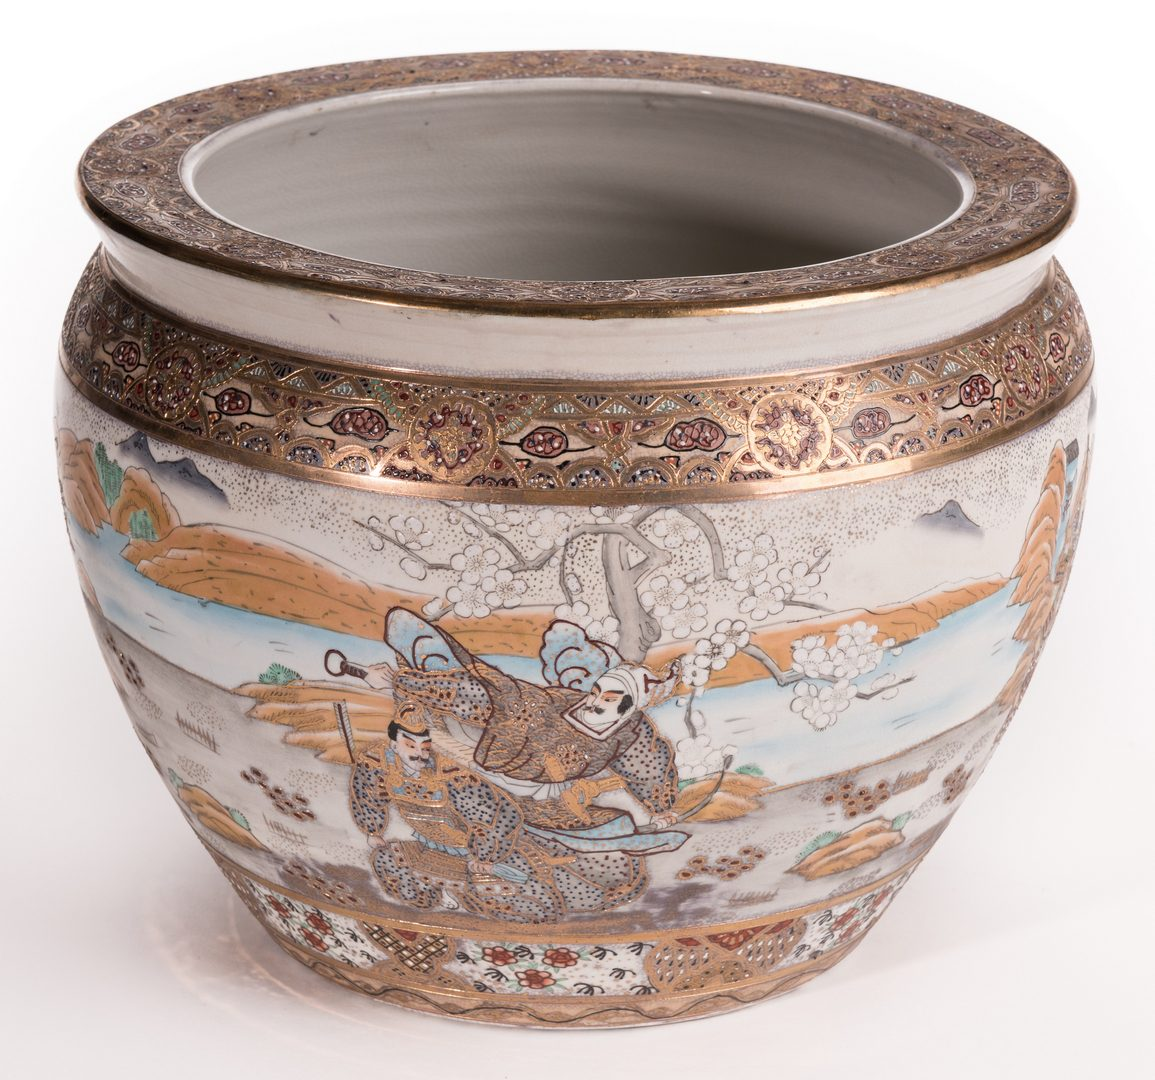 Lot 141: Japanese Satsuma Porcelain Fish Bowl